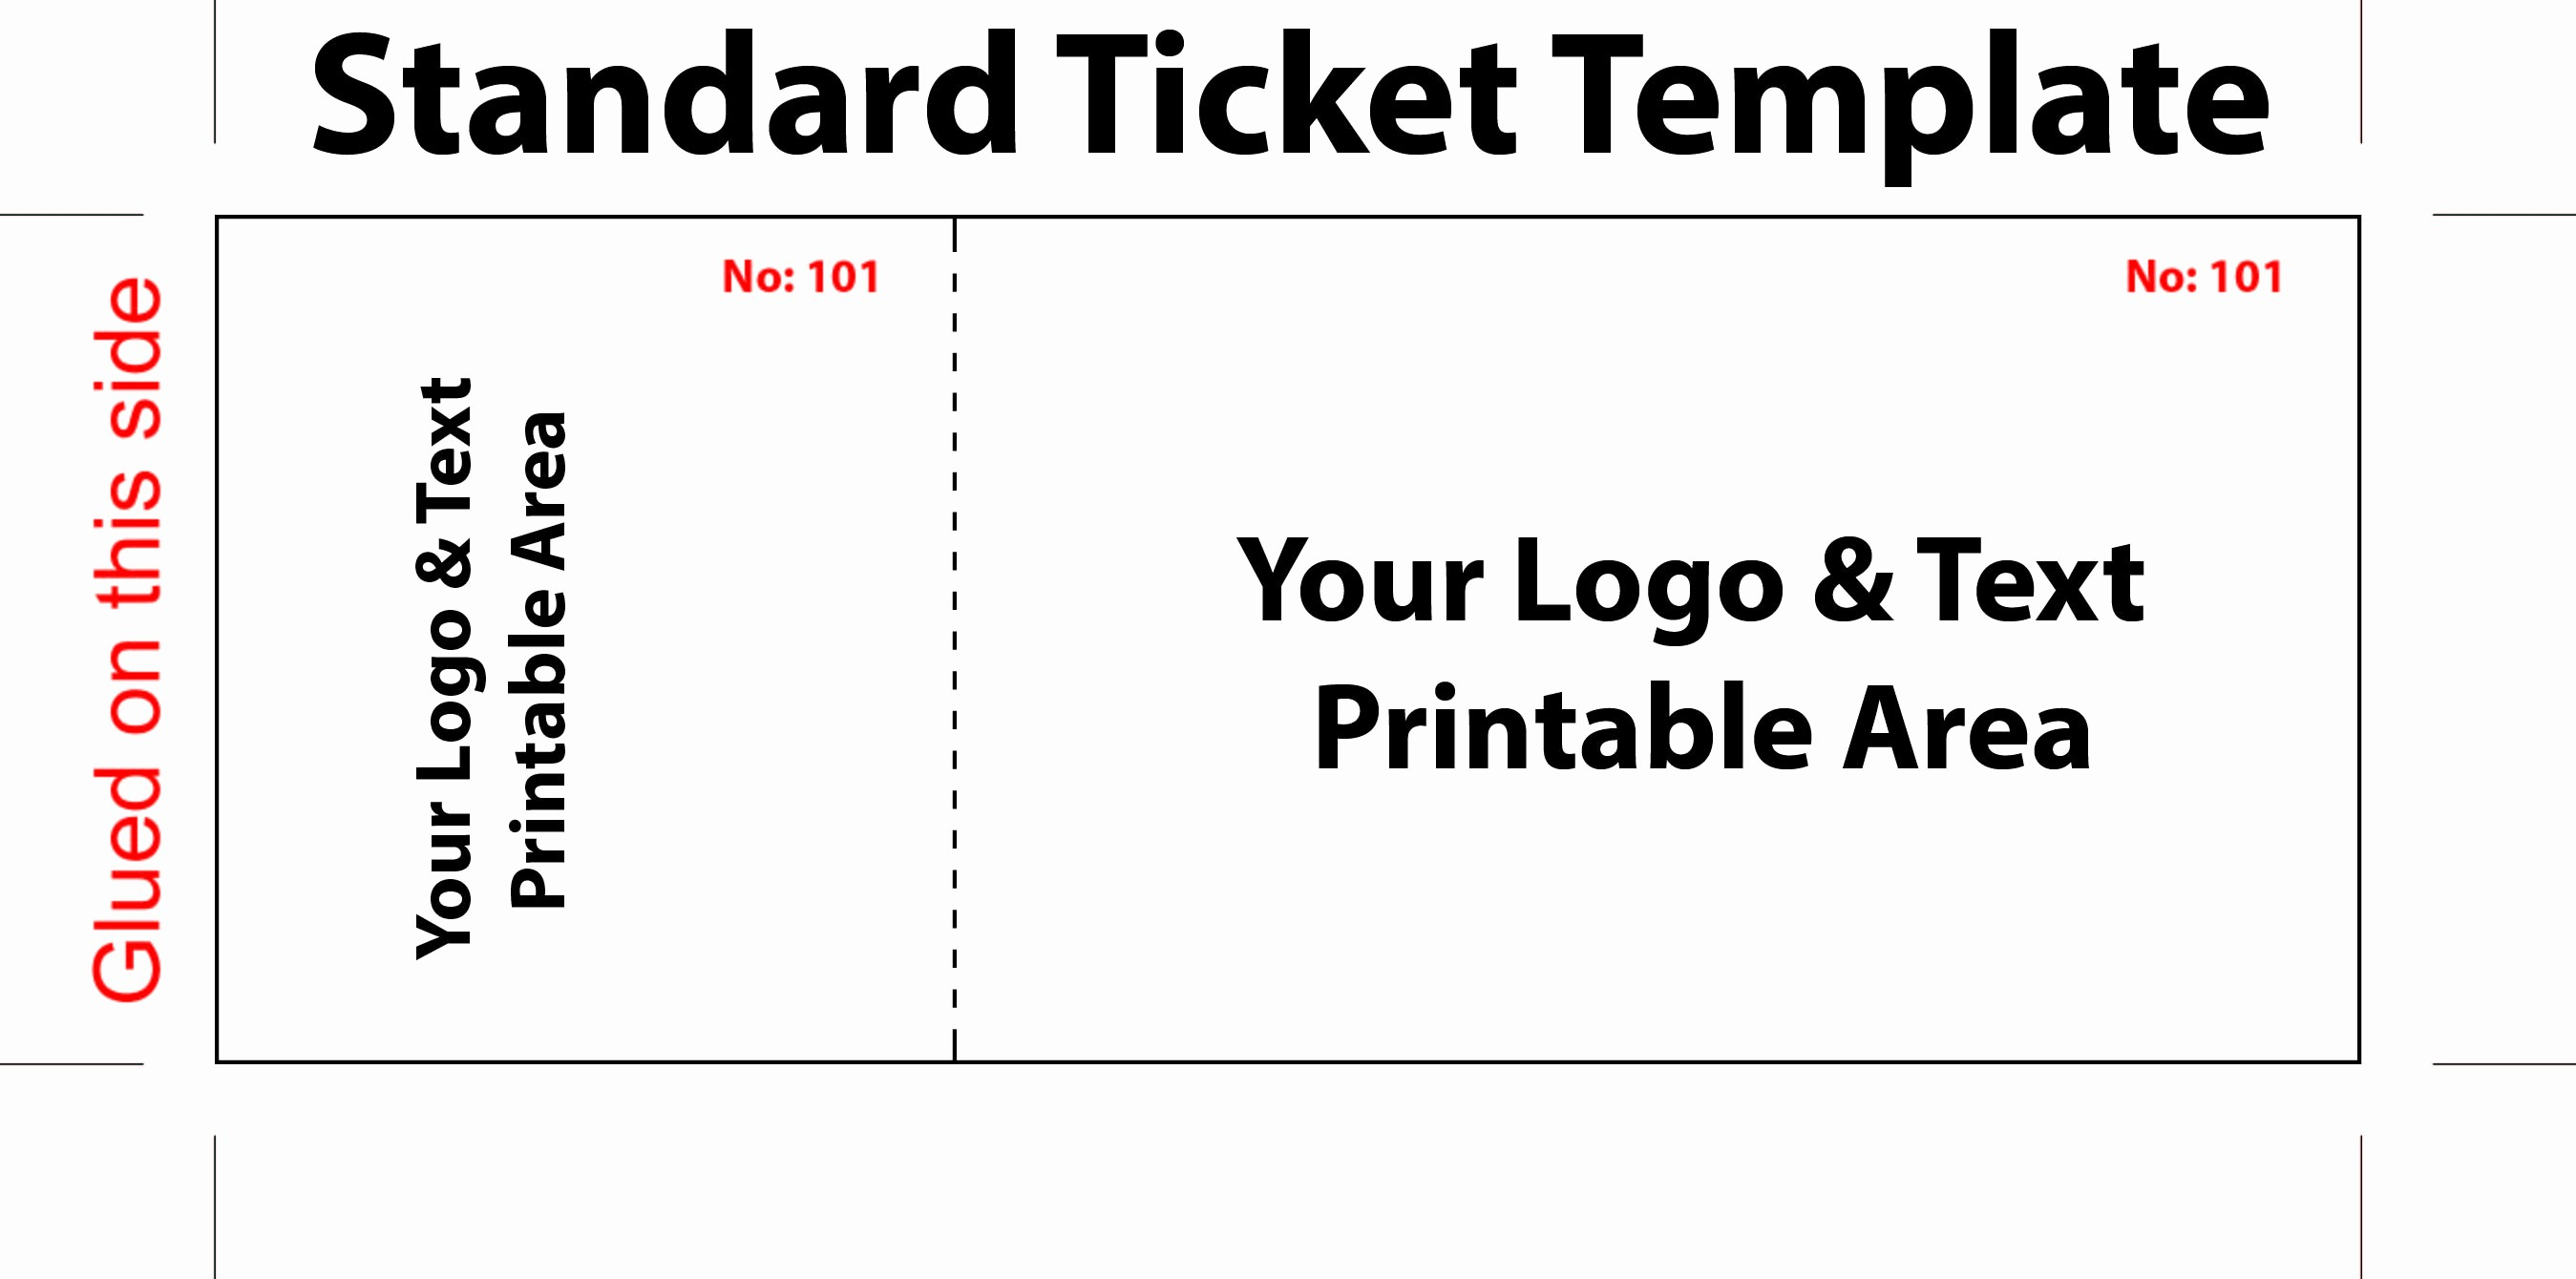 Make Your Own Concert Tickets New Free Editable Standard Ticket Template Example for Concert